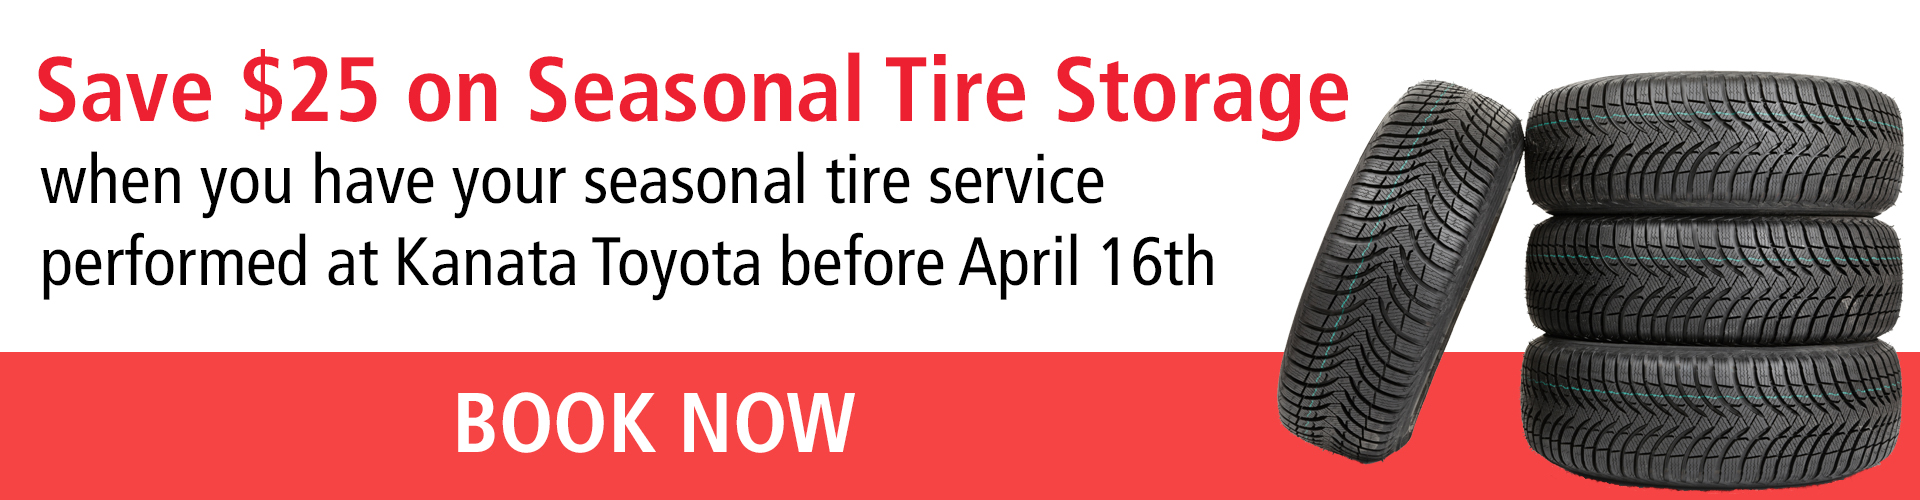 Save $25 On seasonal tire storage